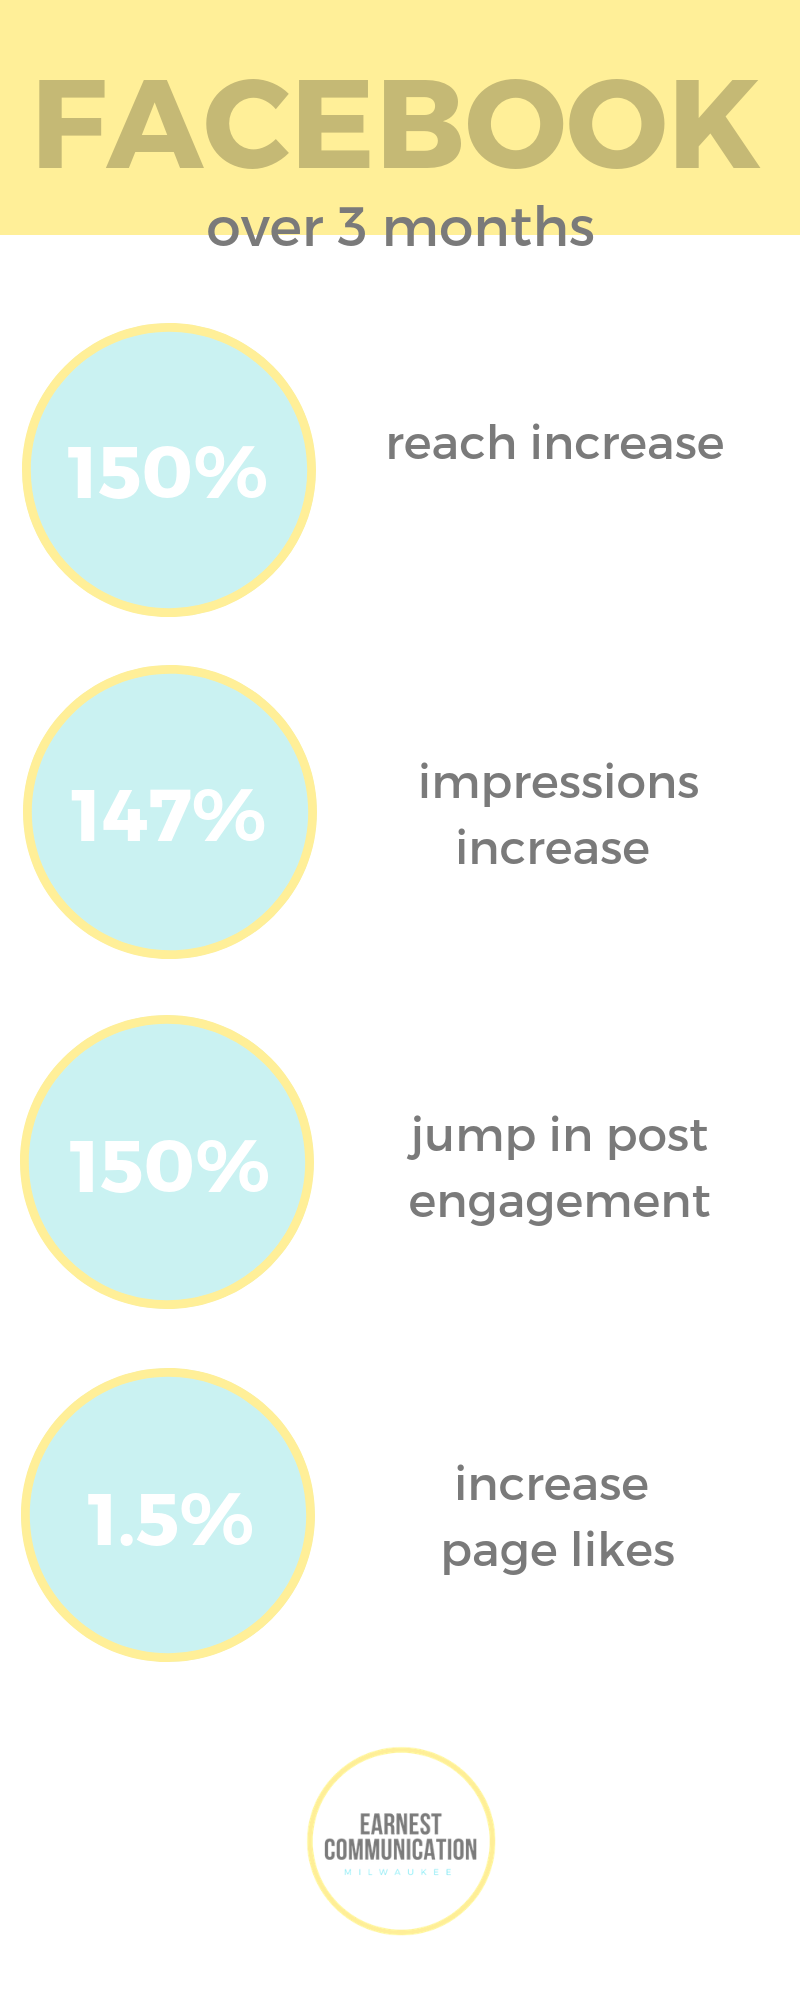 Mortons_FacebookInsights_Infographic.png